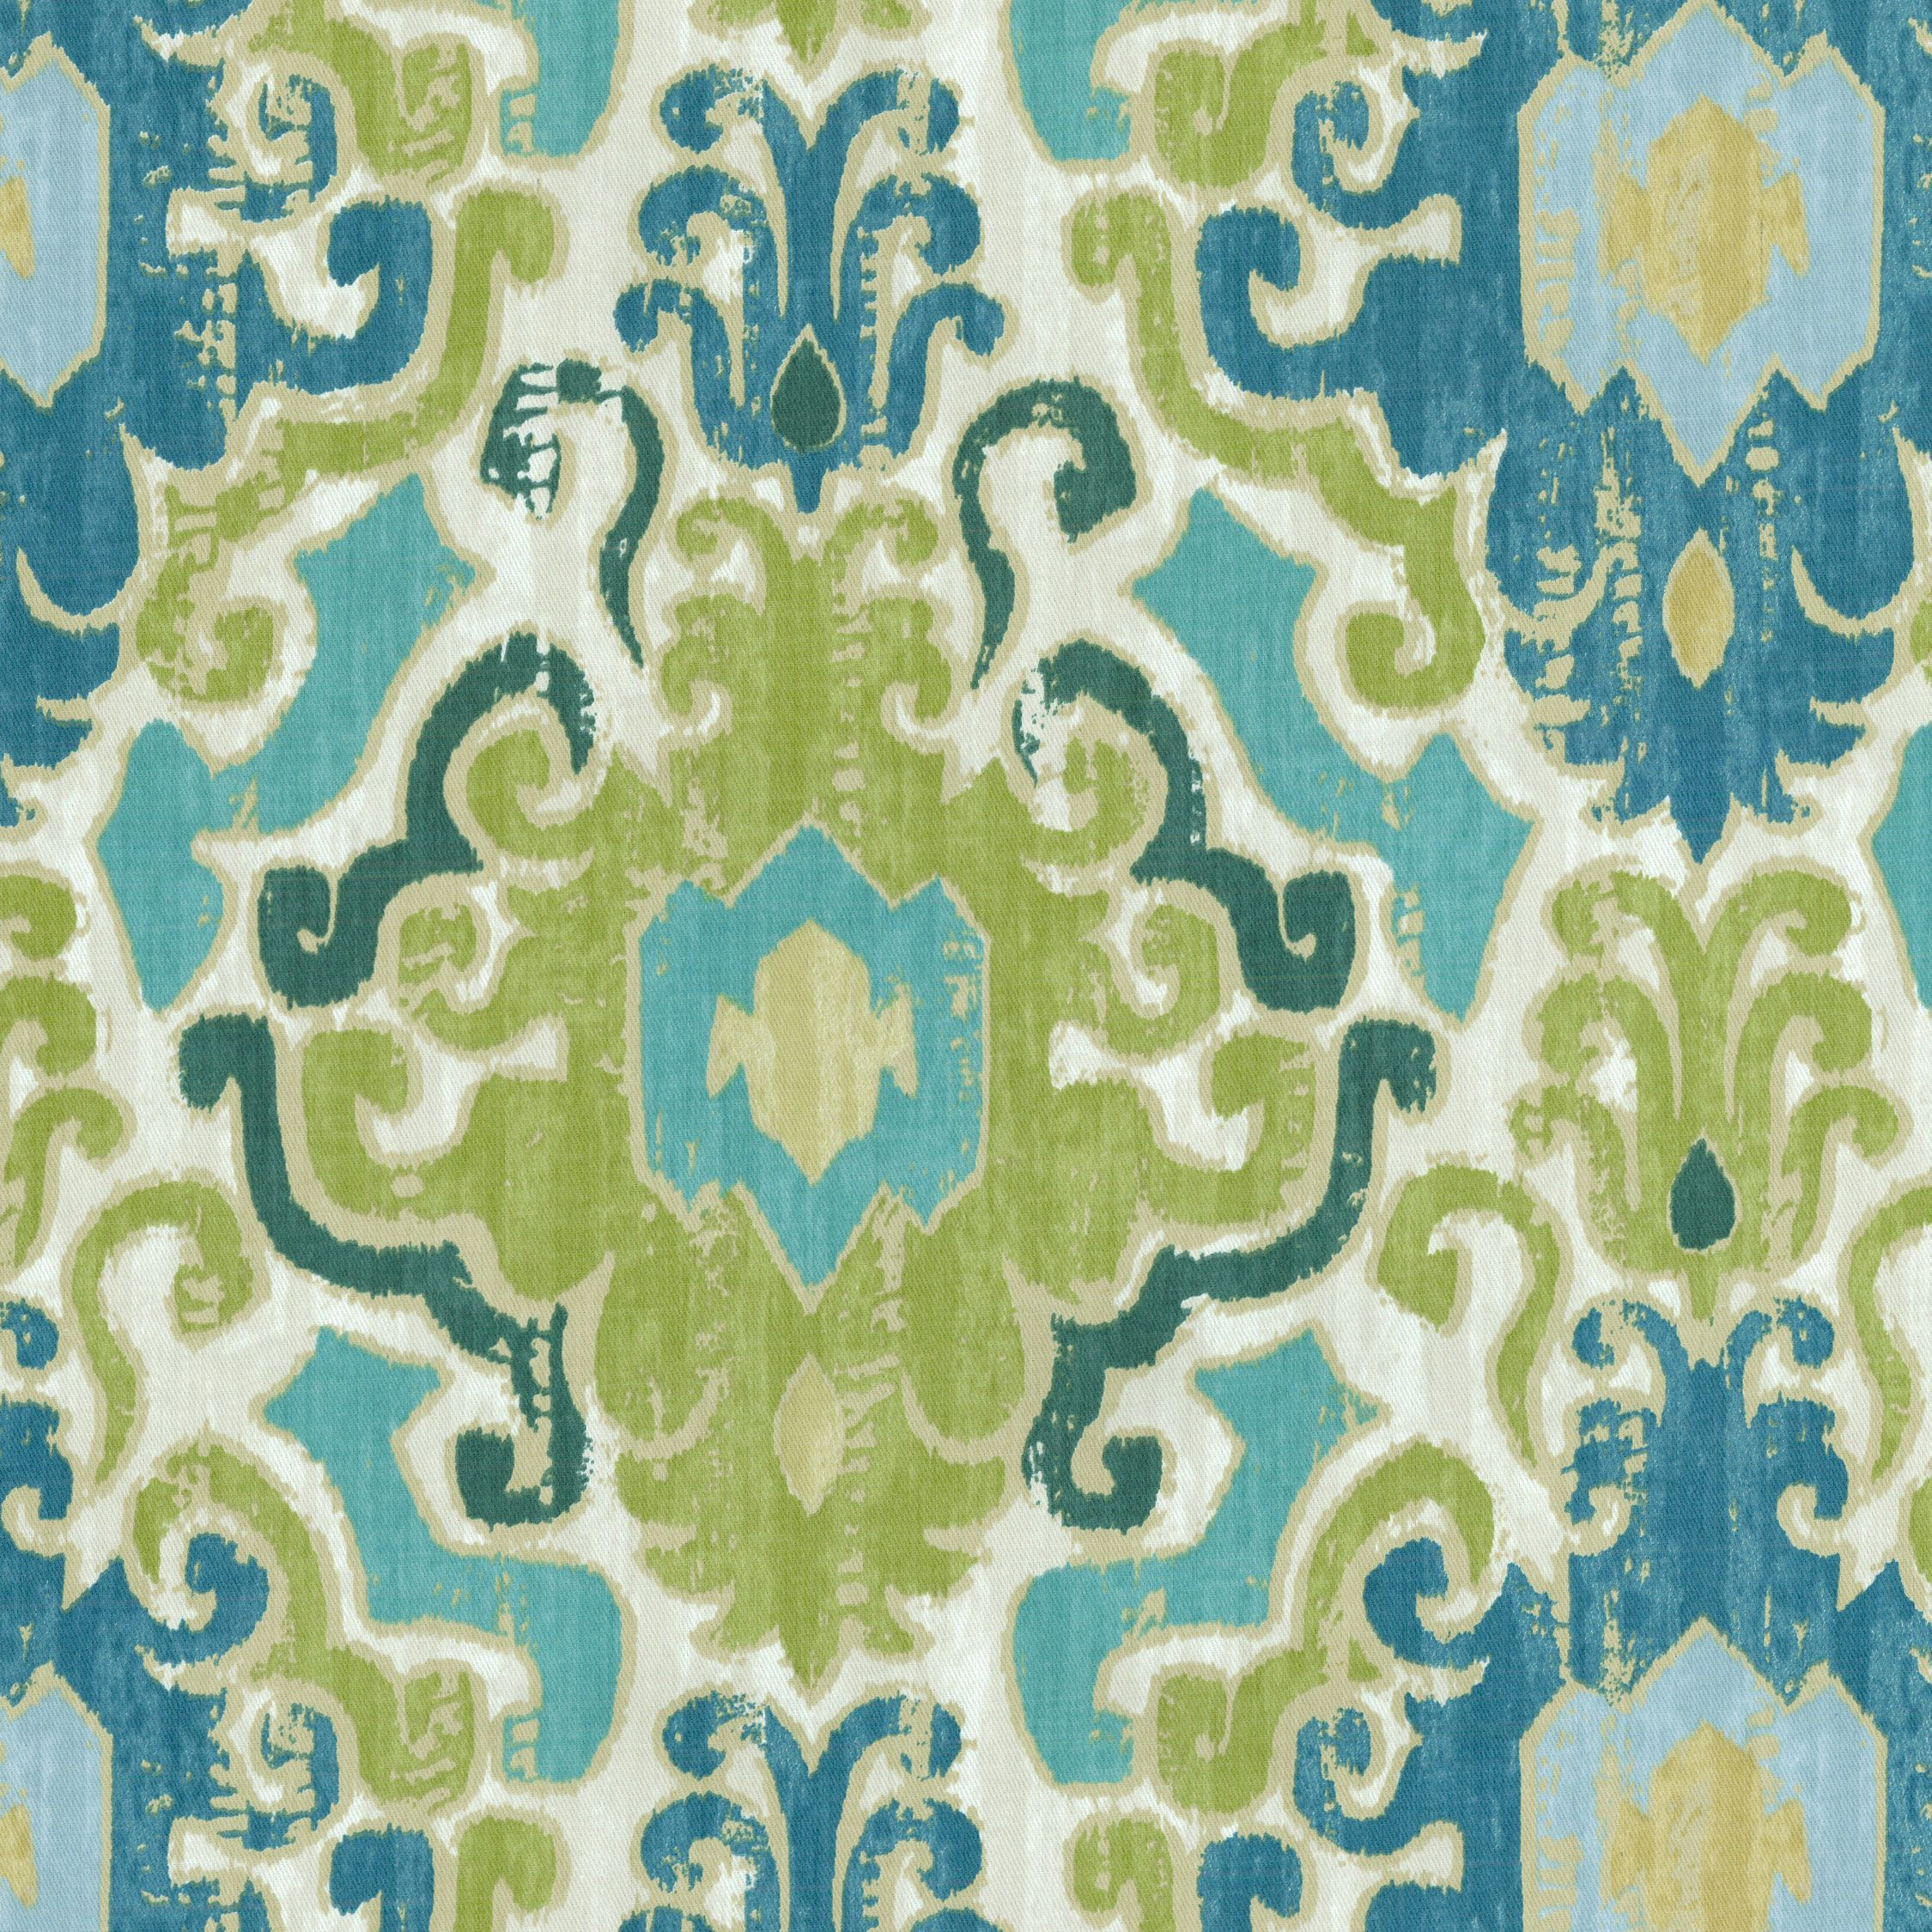 Solid emerald turquoise fabric by the yard teal fabric carousel - Smc Swavelle Millcreek Home Decor Print Fabric Toroli Twill Aqua